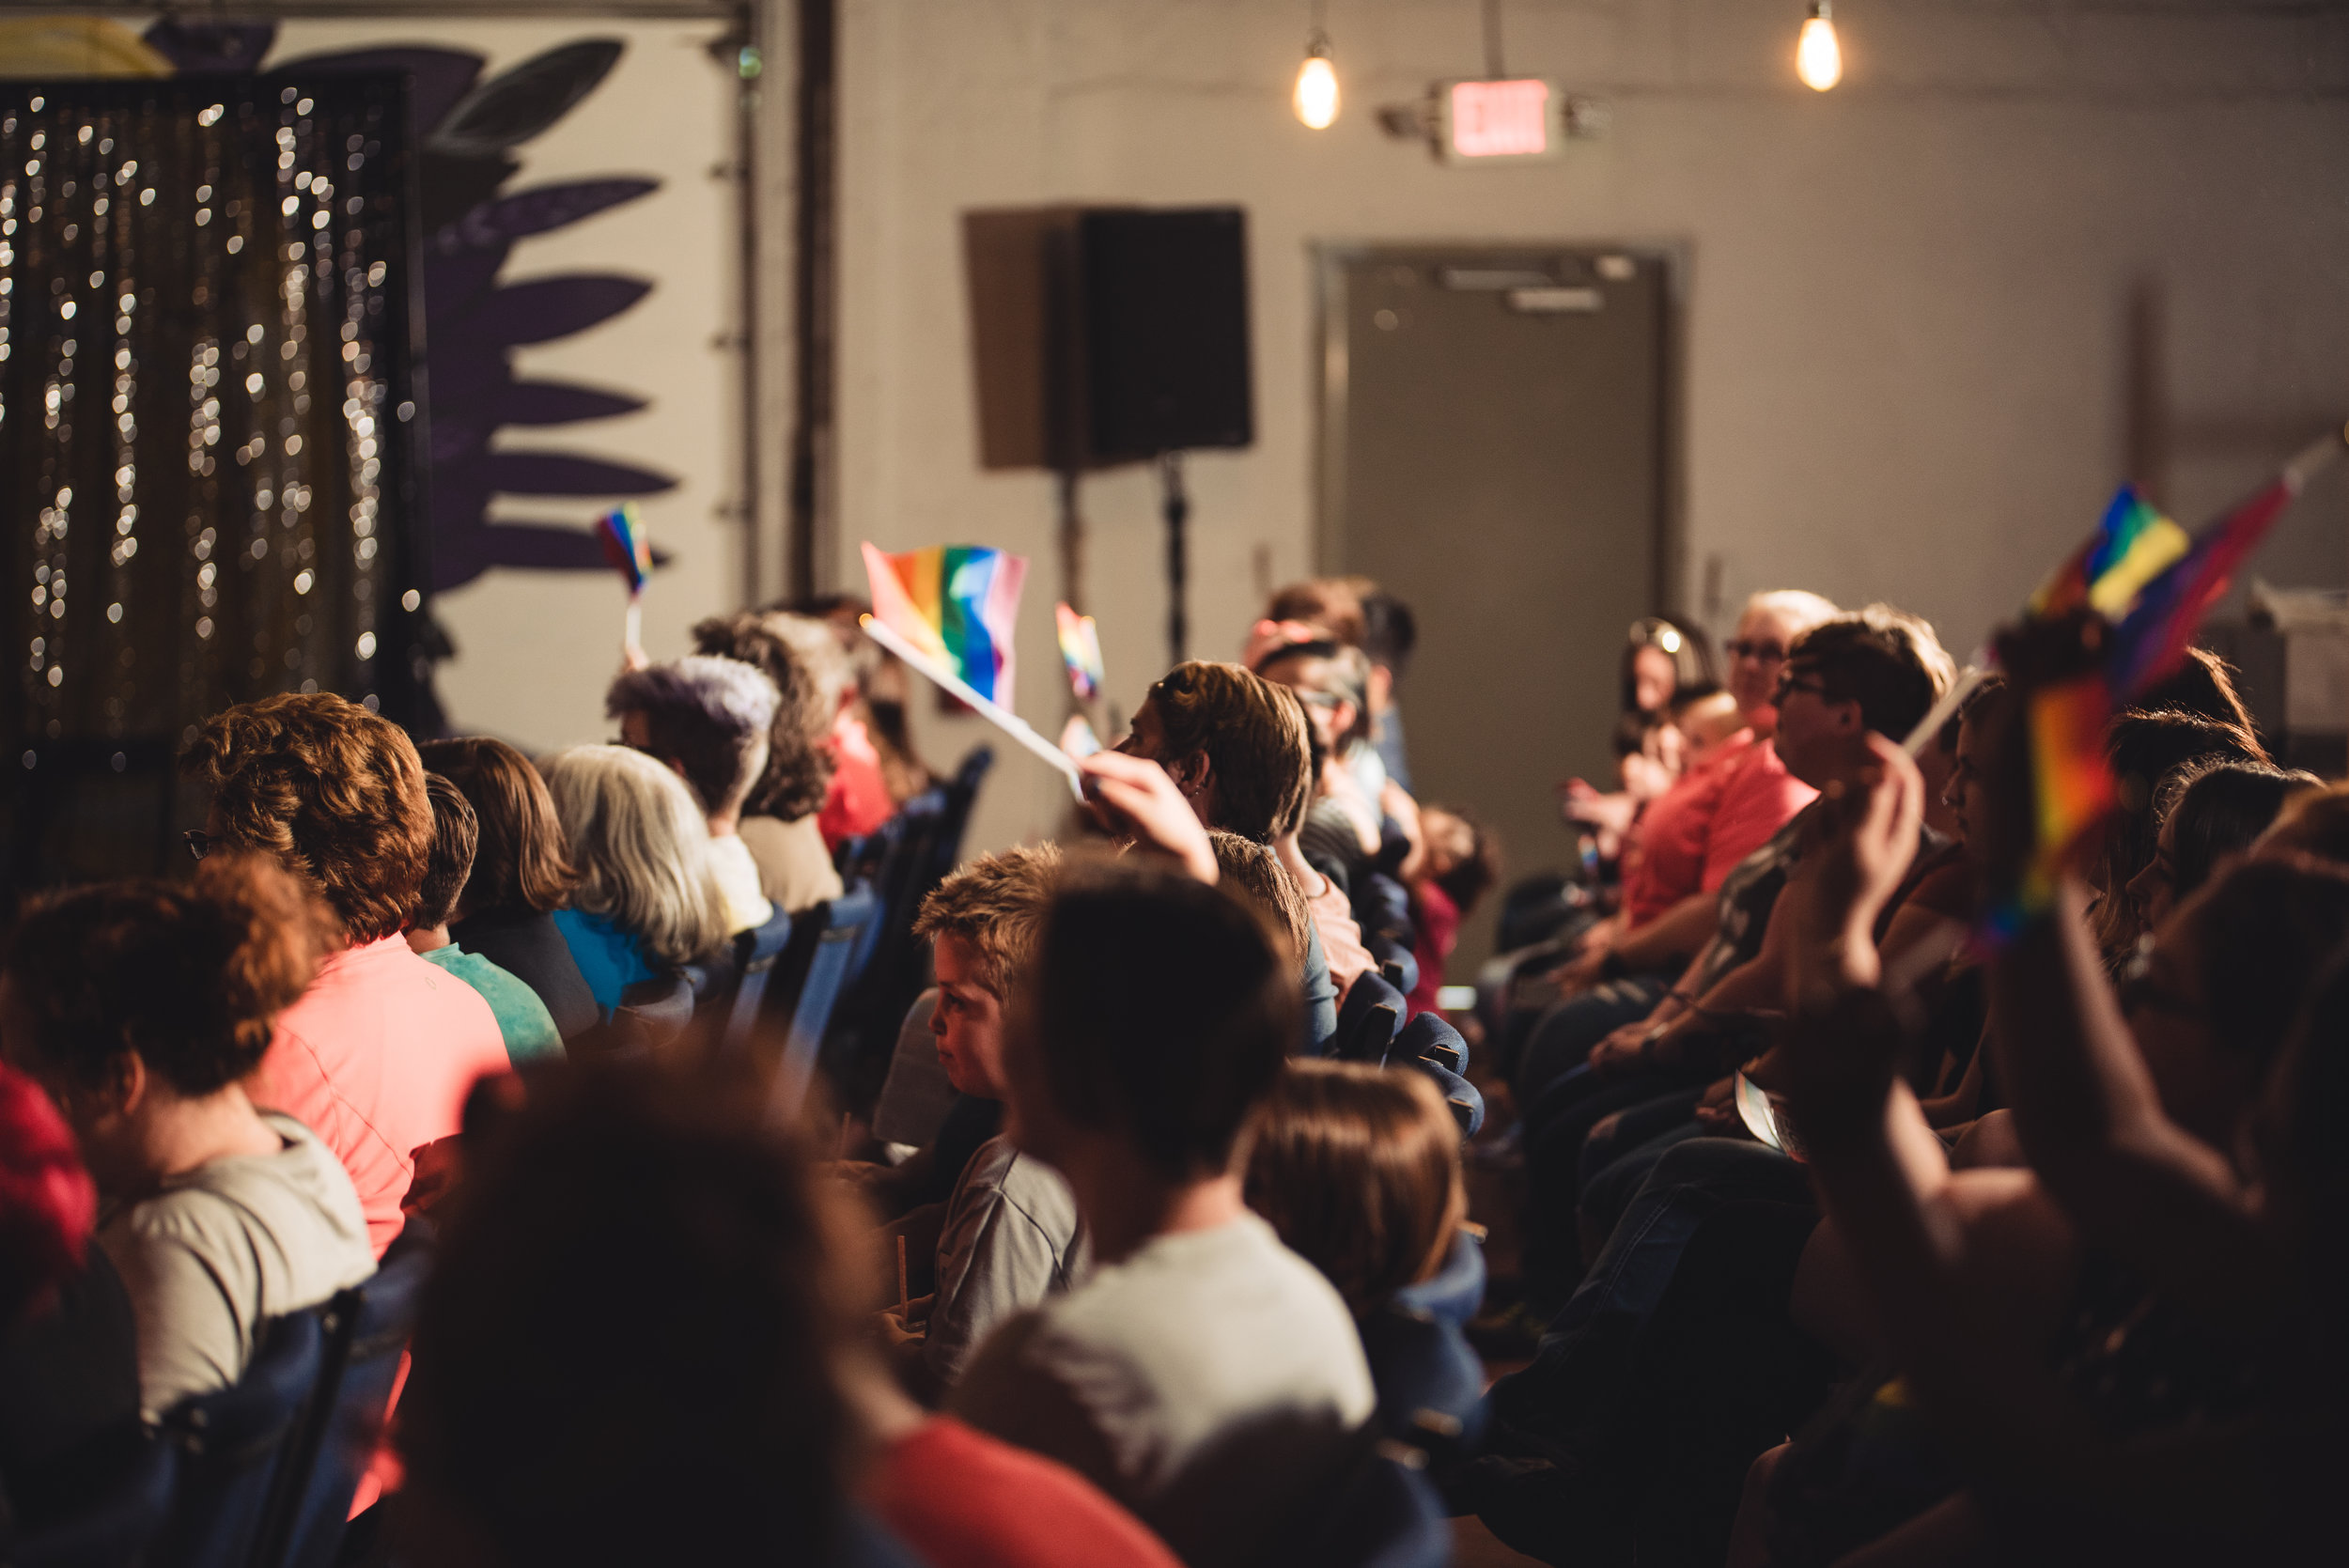 Community Events - The Center produces a wide variety of events every month. From our engaging community discussions to our captivating All Ages Drag Show, there is something for everyone.